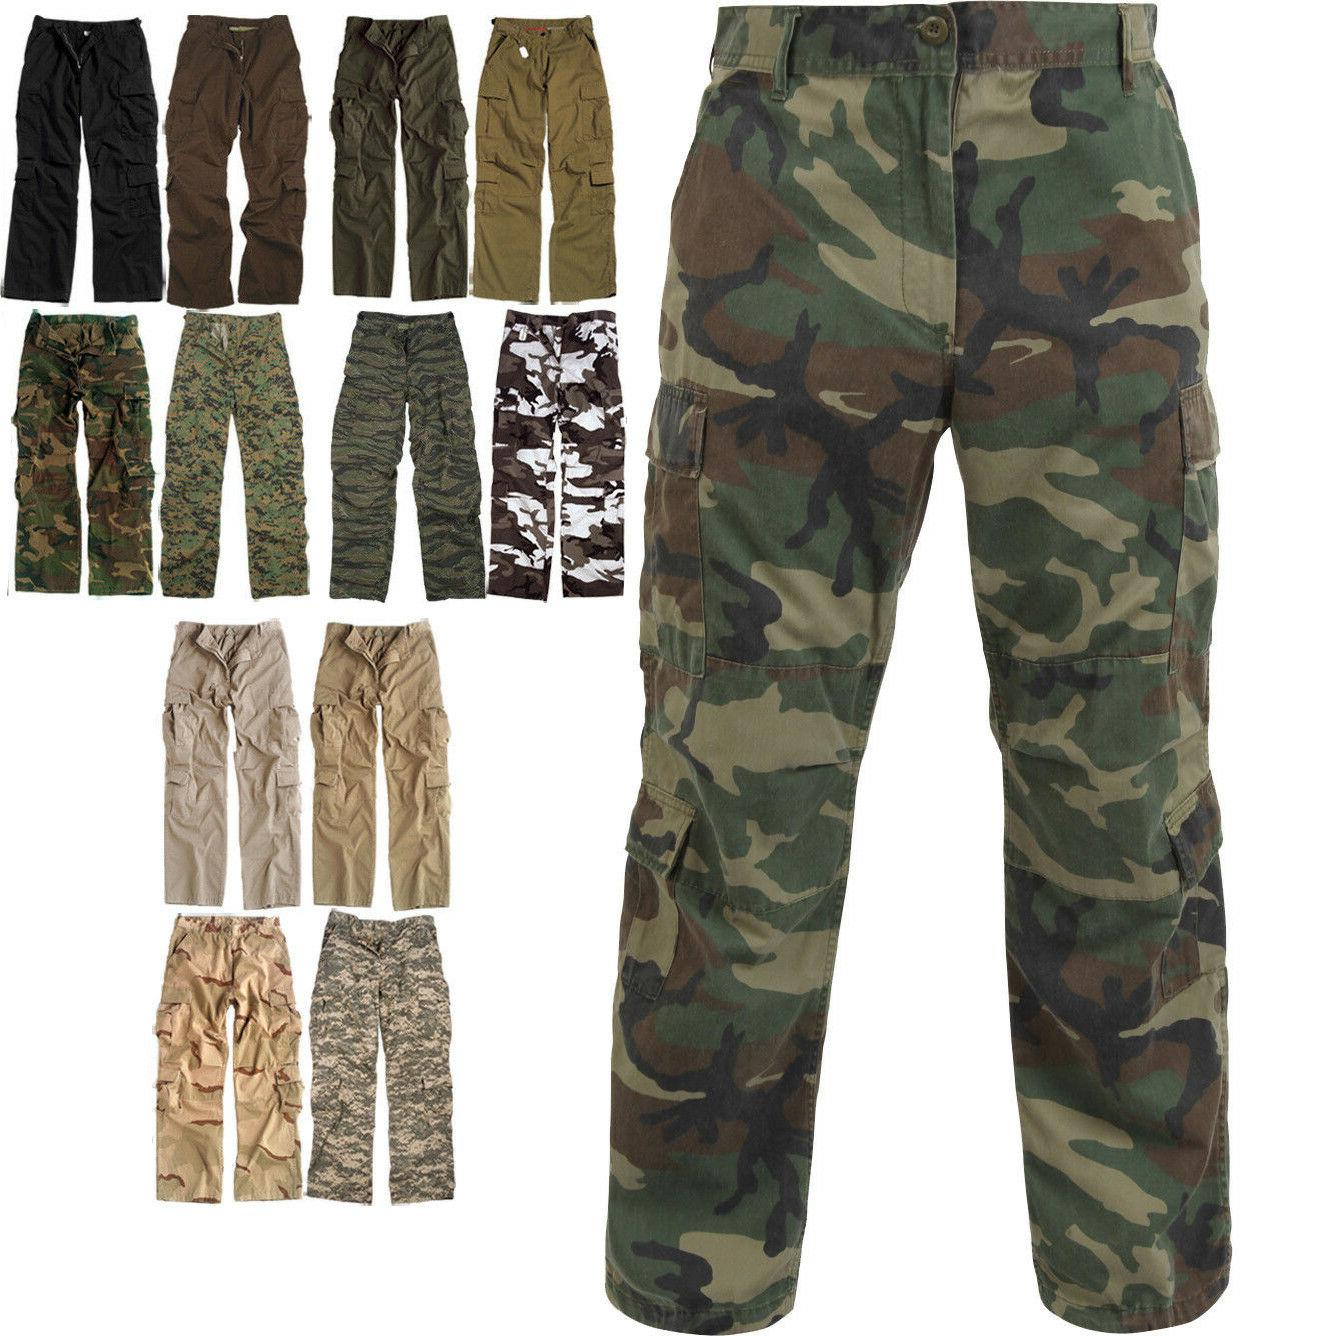 Military Paratrooper Fatigues Camo Pants 8 Washed Tactical